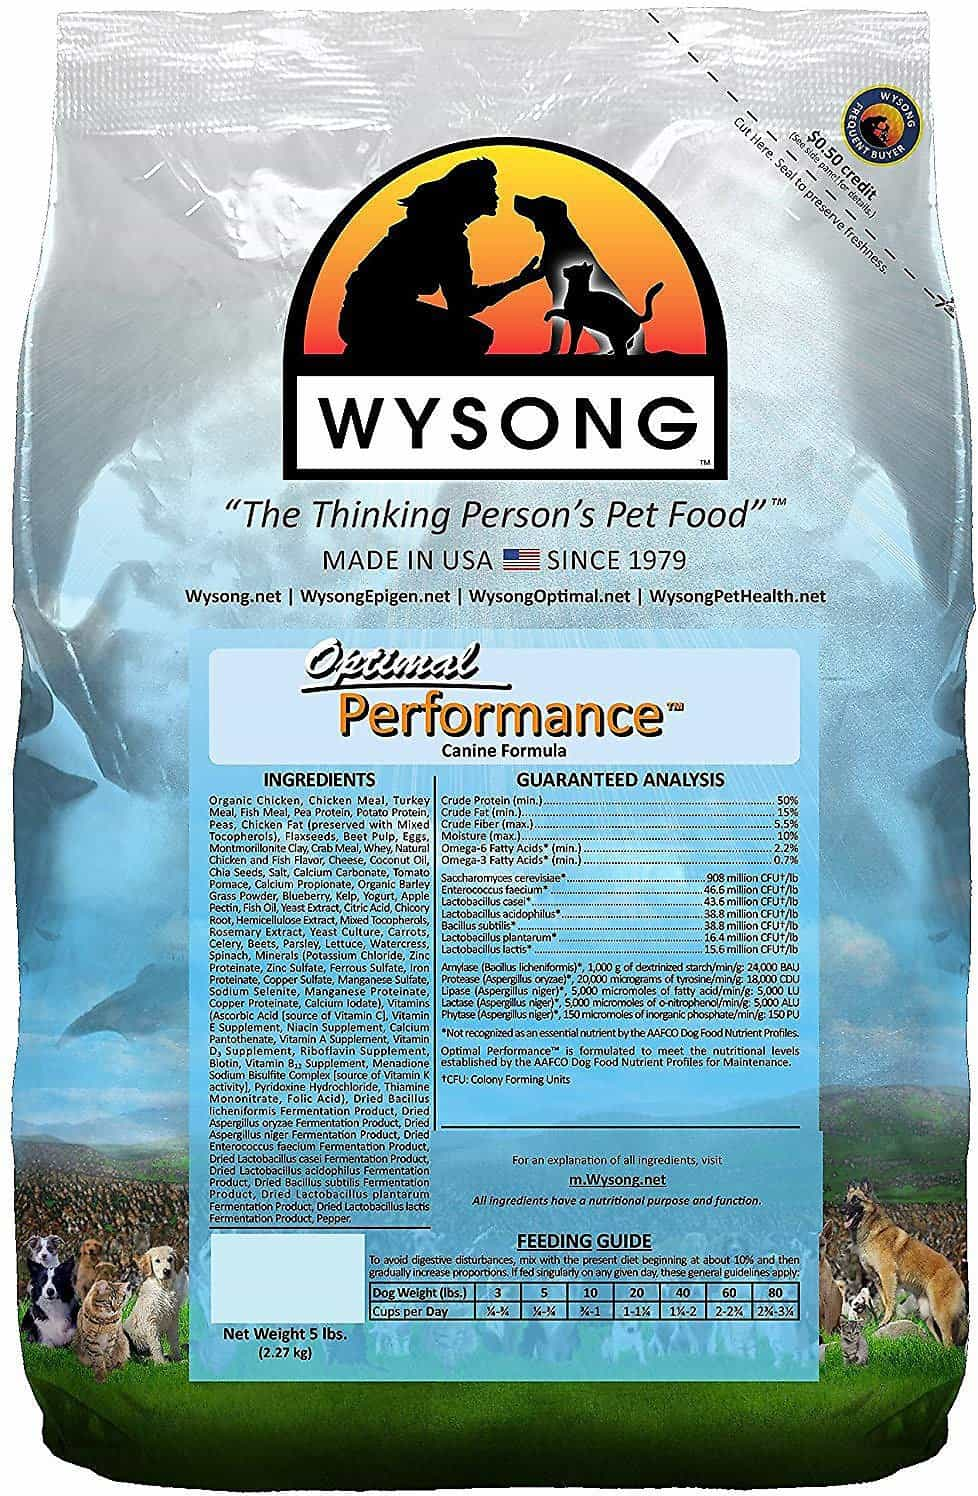 Wysong Dog Food Review [year]: Pioneers on Archetypal Feeding 5